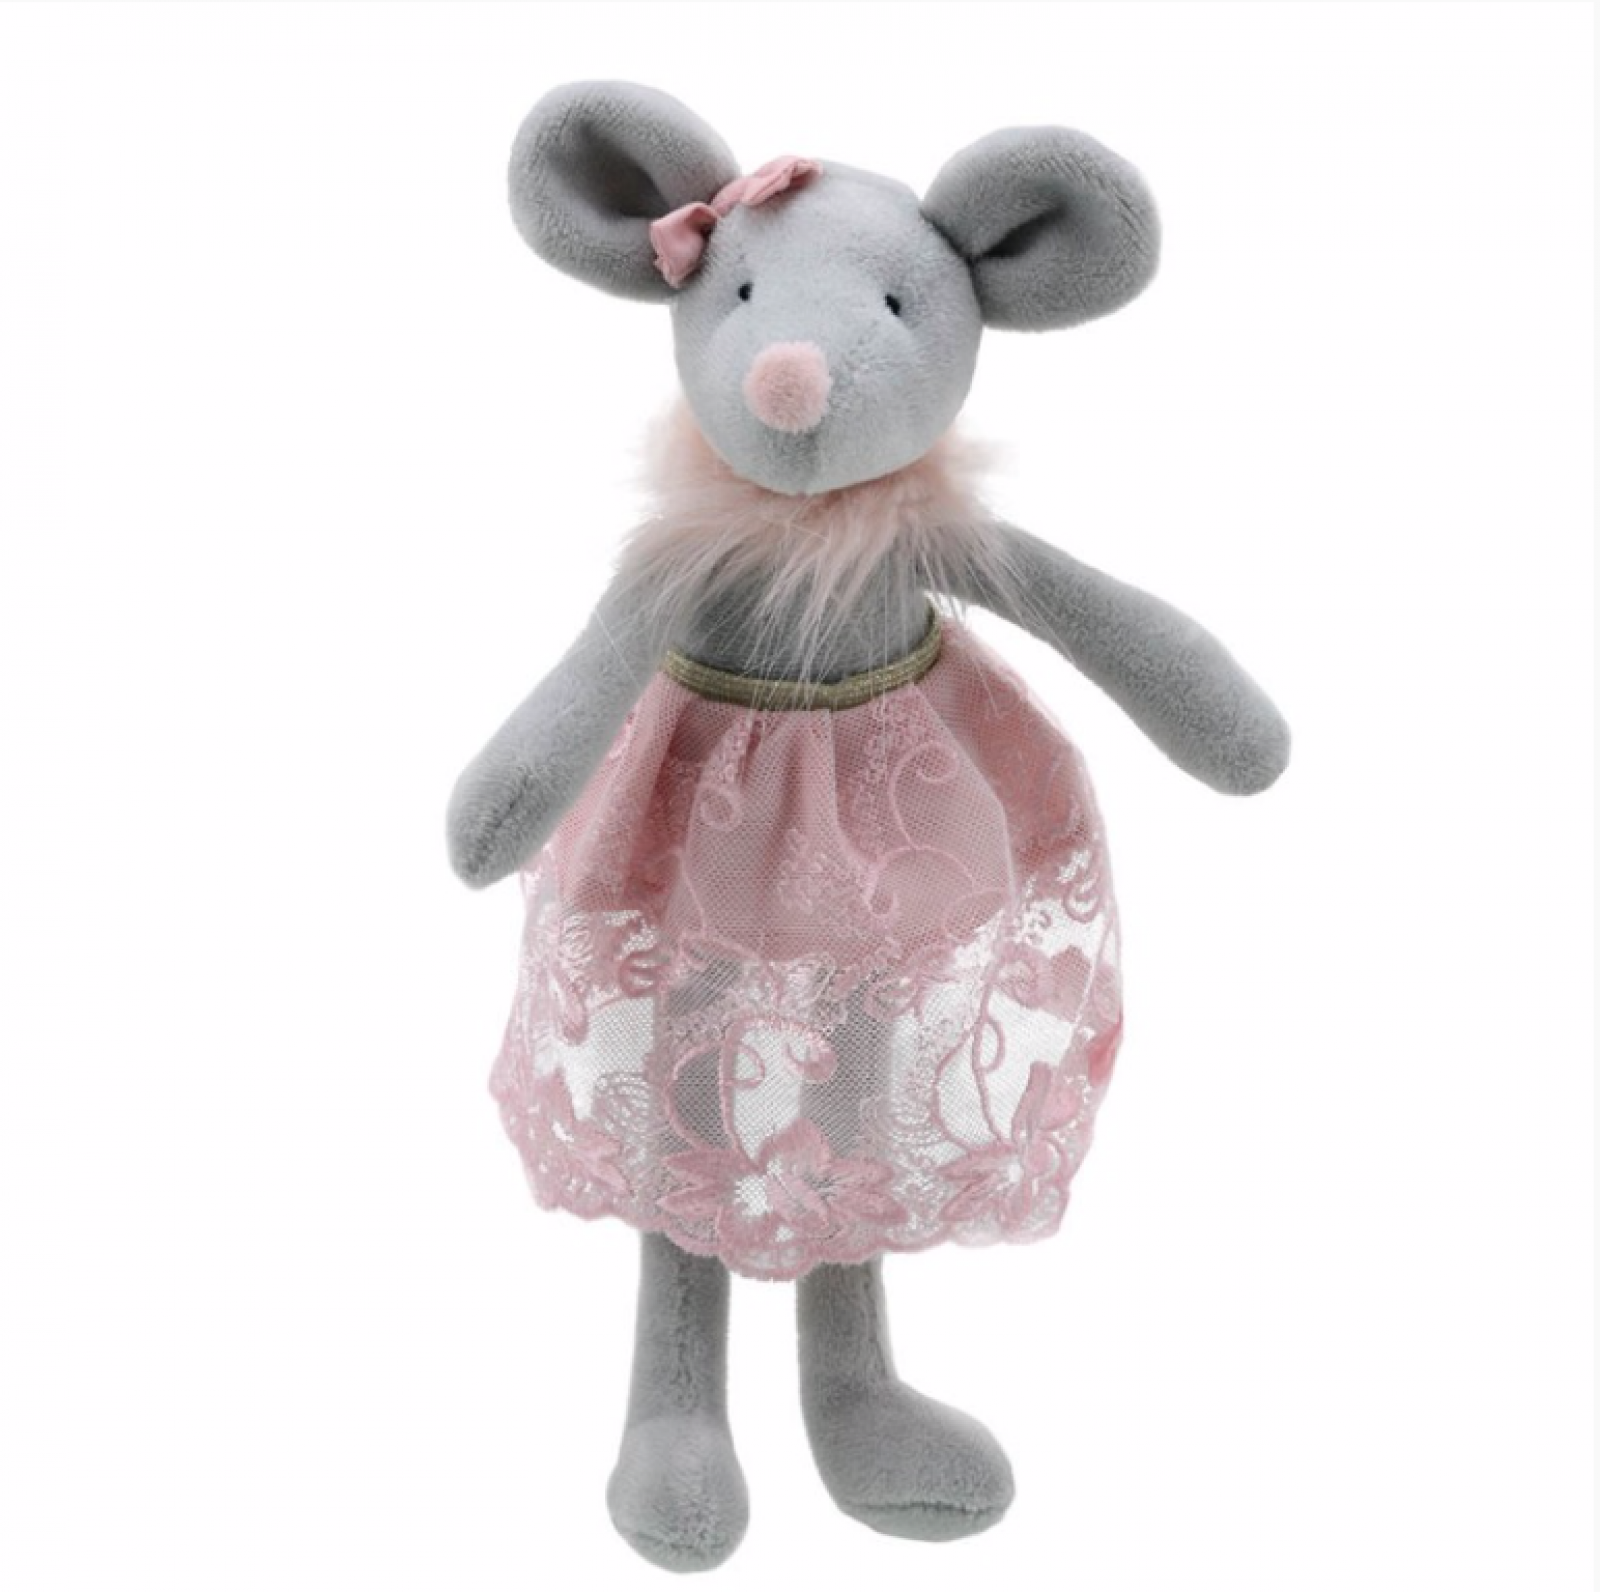 Mouse - Wilberry Dancer Soft Toy 0+ thumbnails